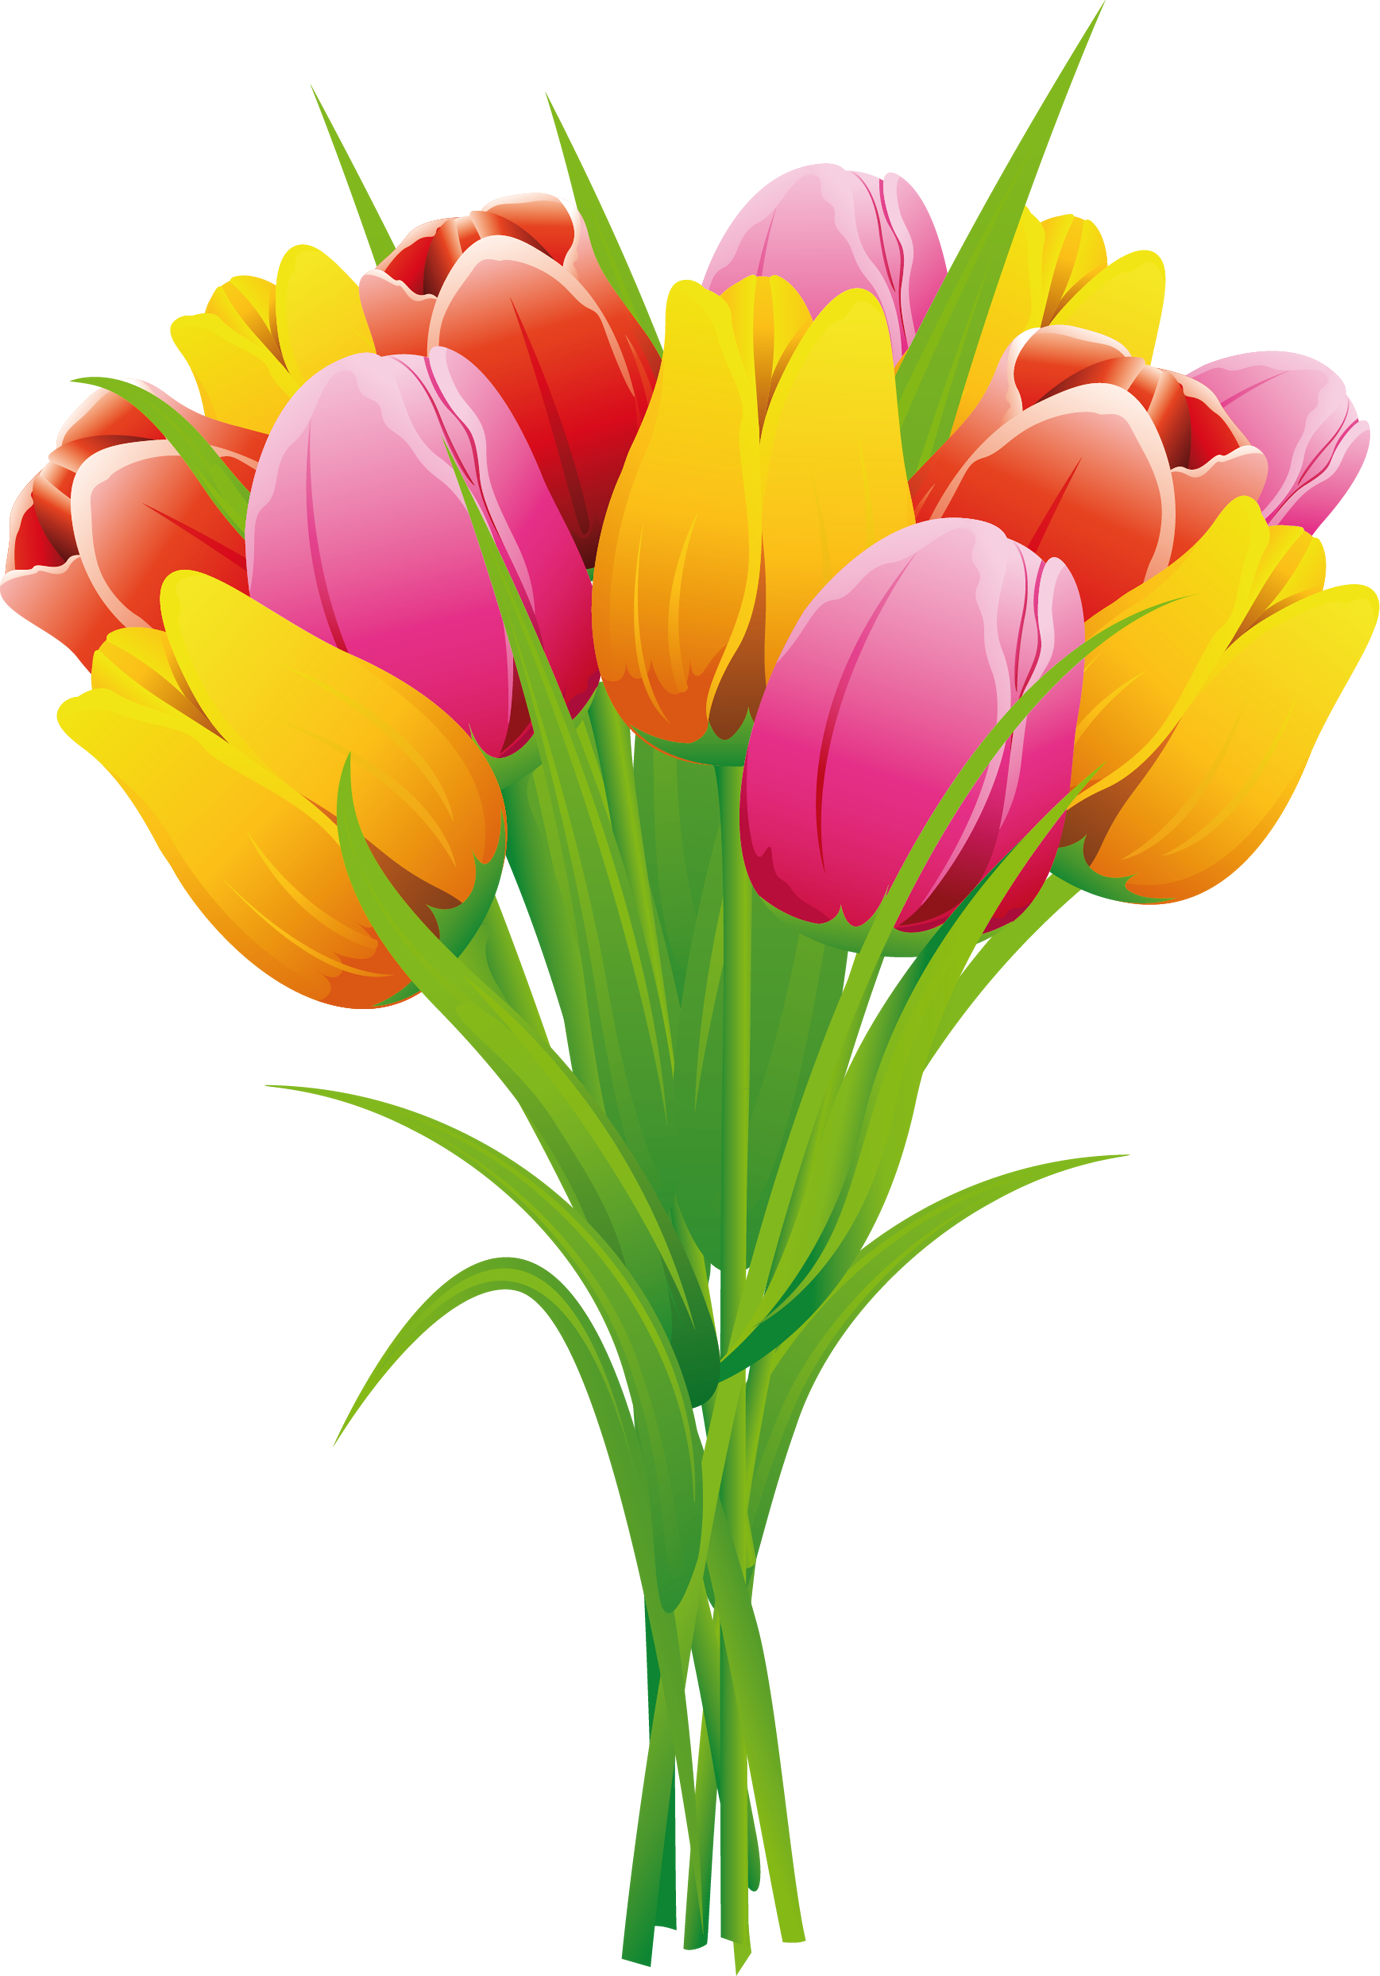 Pin By Waseem Khan On Photo Flower Clipart Flower Painting Free Flower Clipart